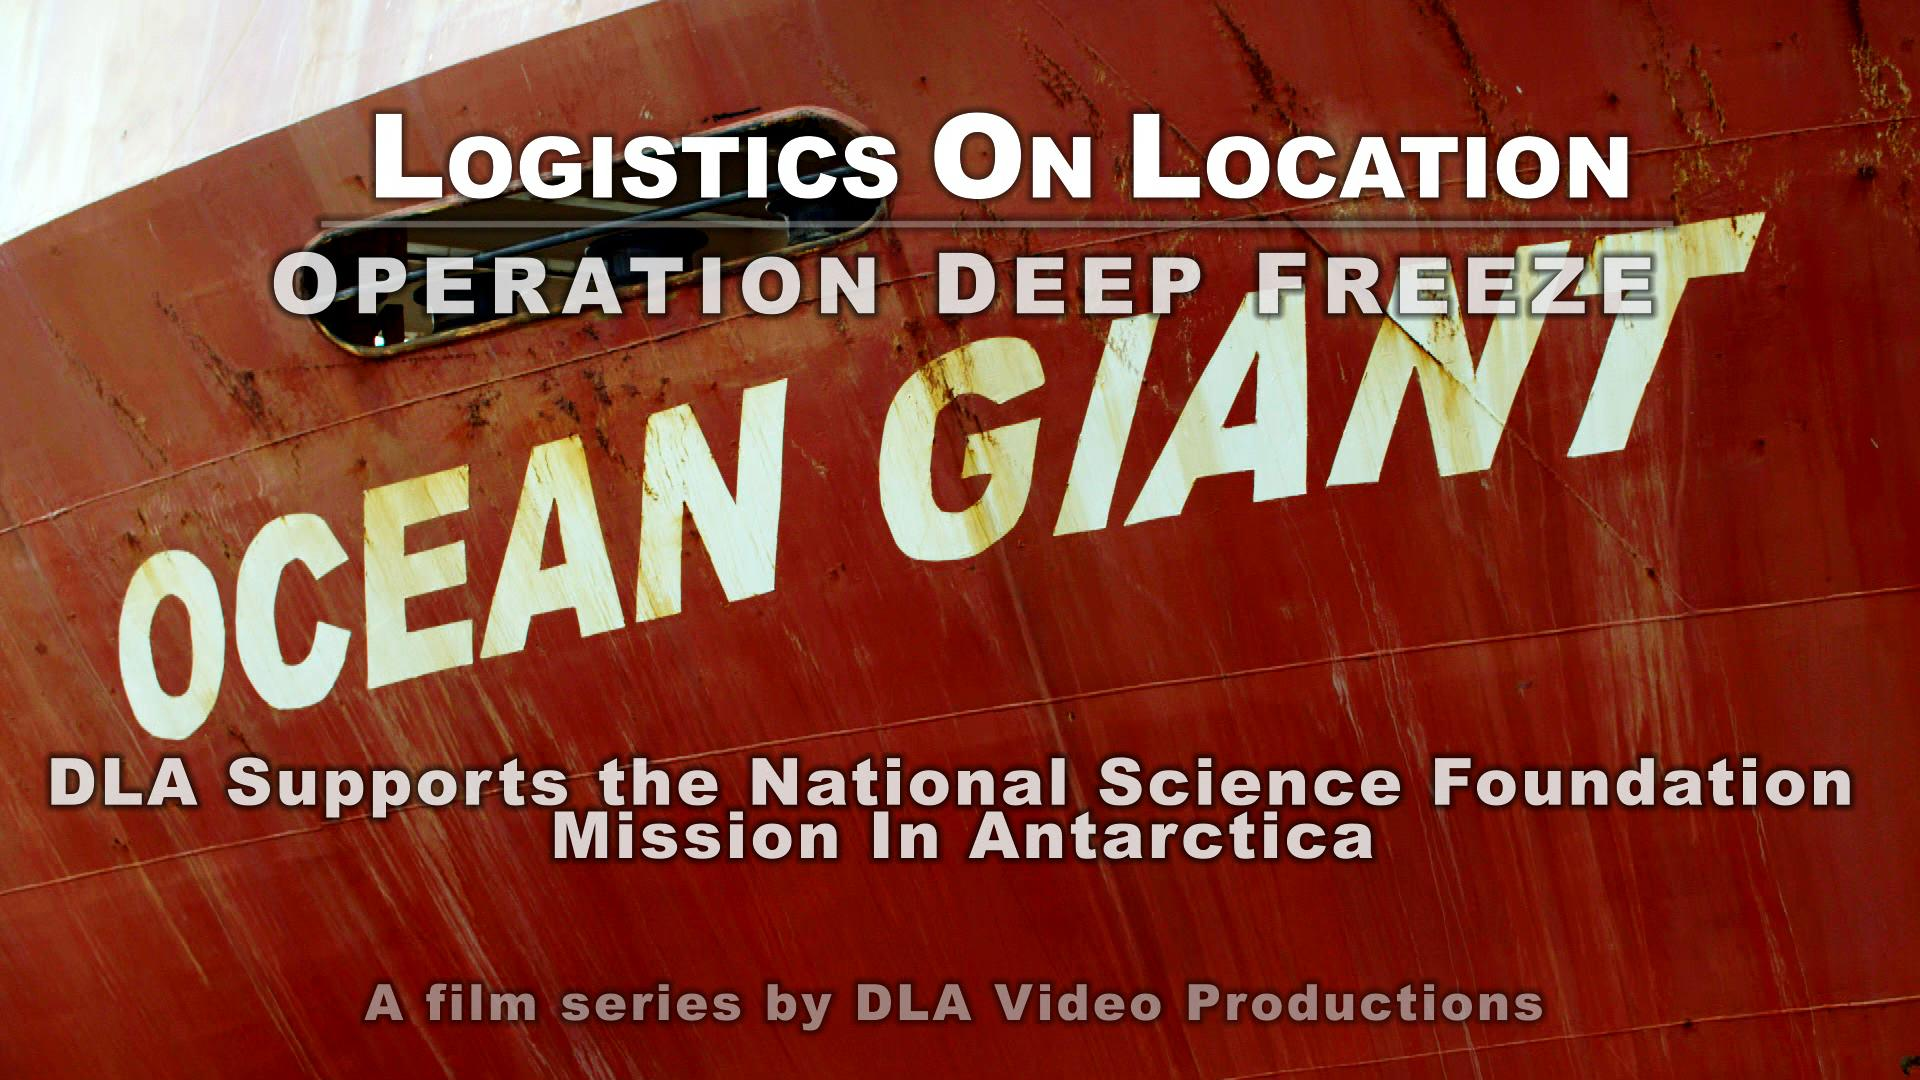 Logistics On Location: Operation Deep Freeze, DLA Supports National Science Foundation Mission in Antarctica